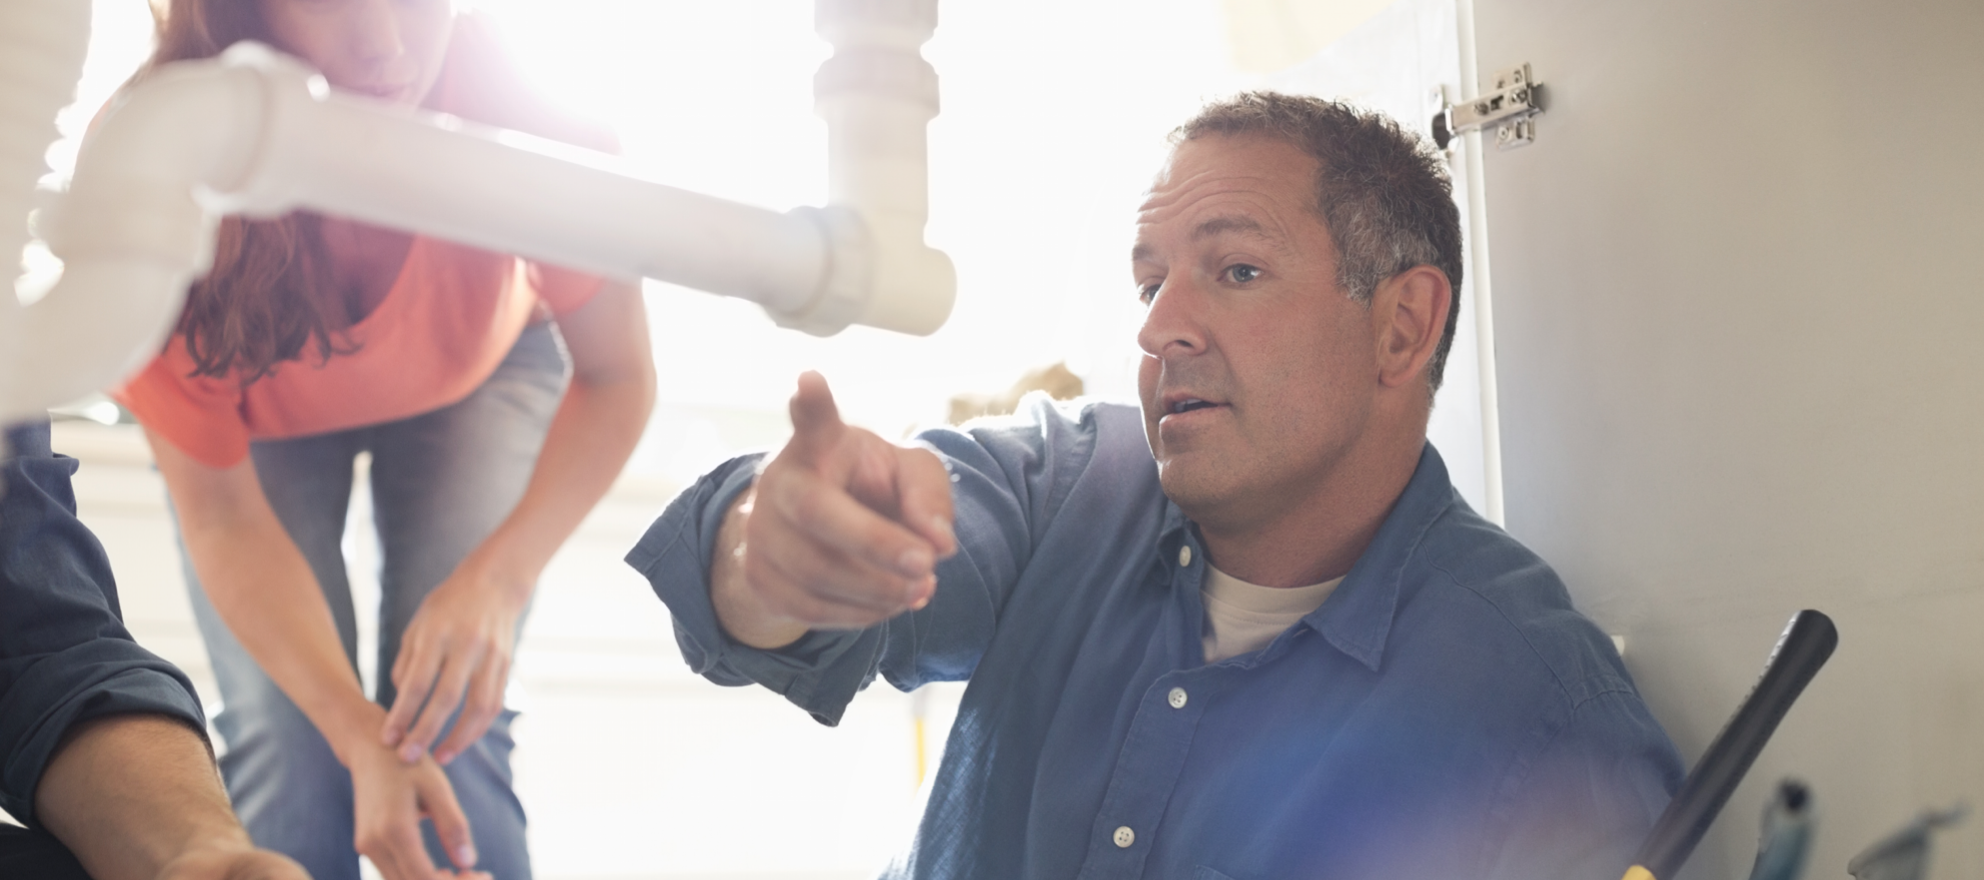 Don't find yourself 'plumb out of luck' by making this plumbing mistake